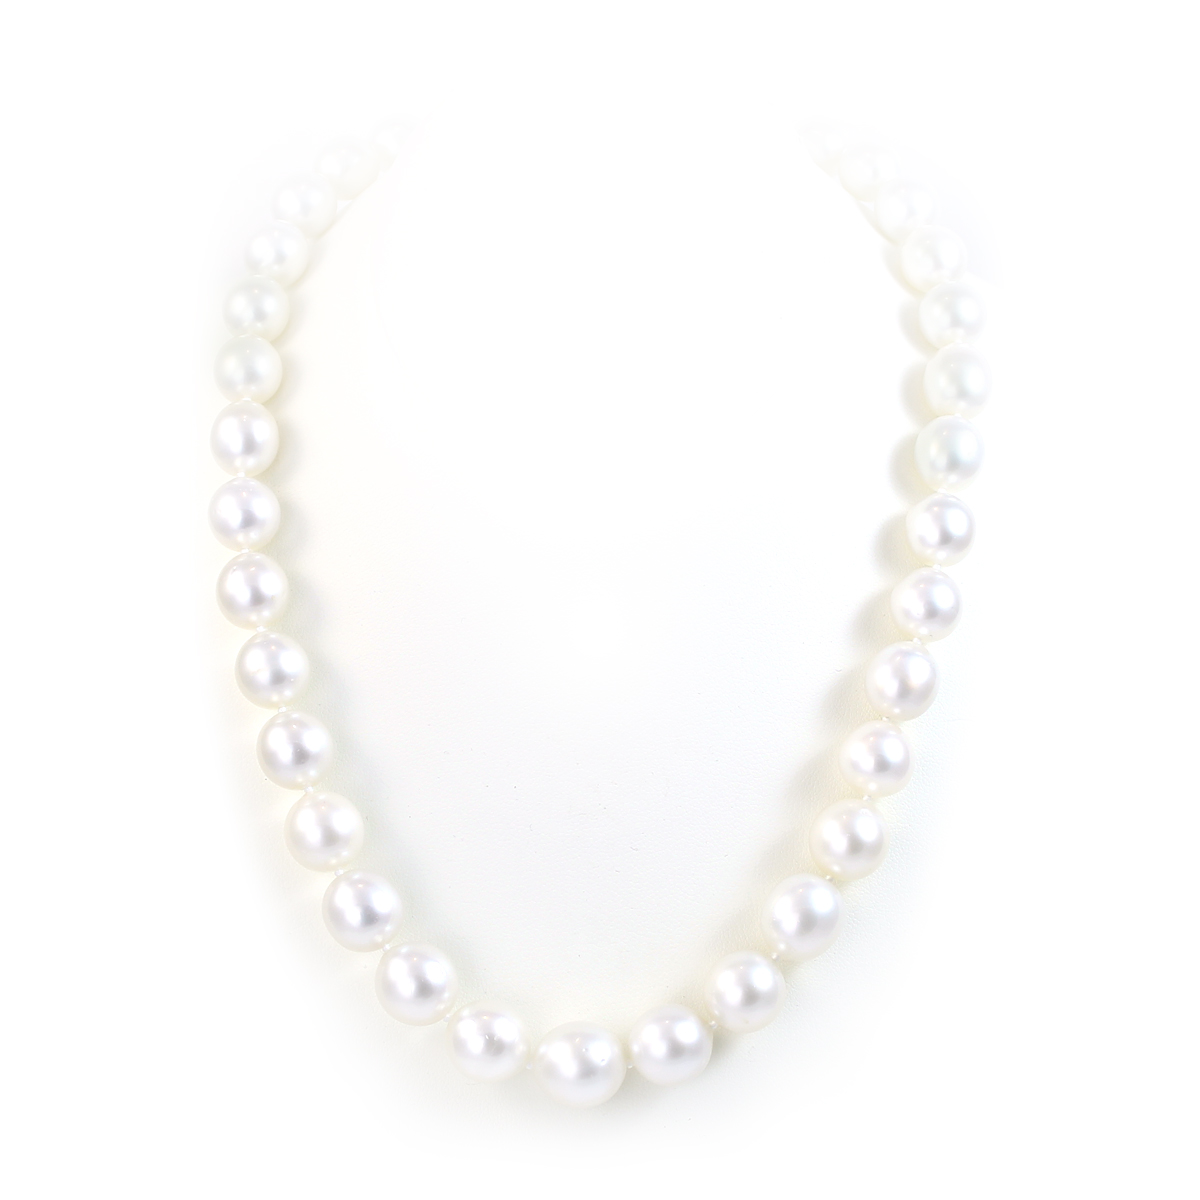 China Pearl 14 Karat White Gold 10-11.5mm White South Sea Pearl Necklace